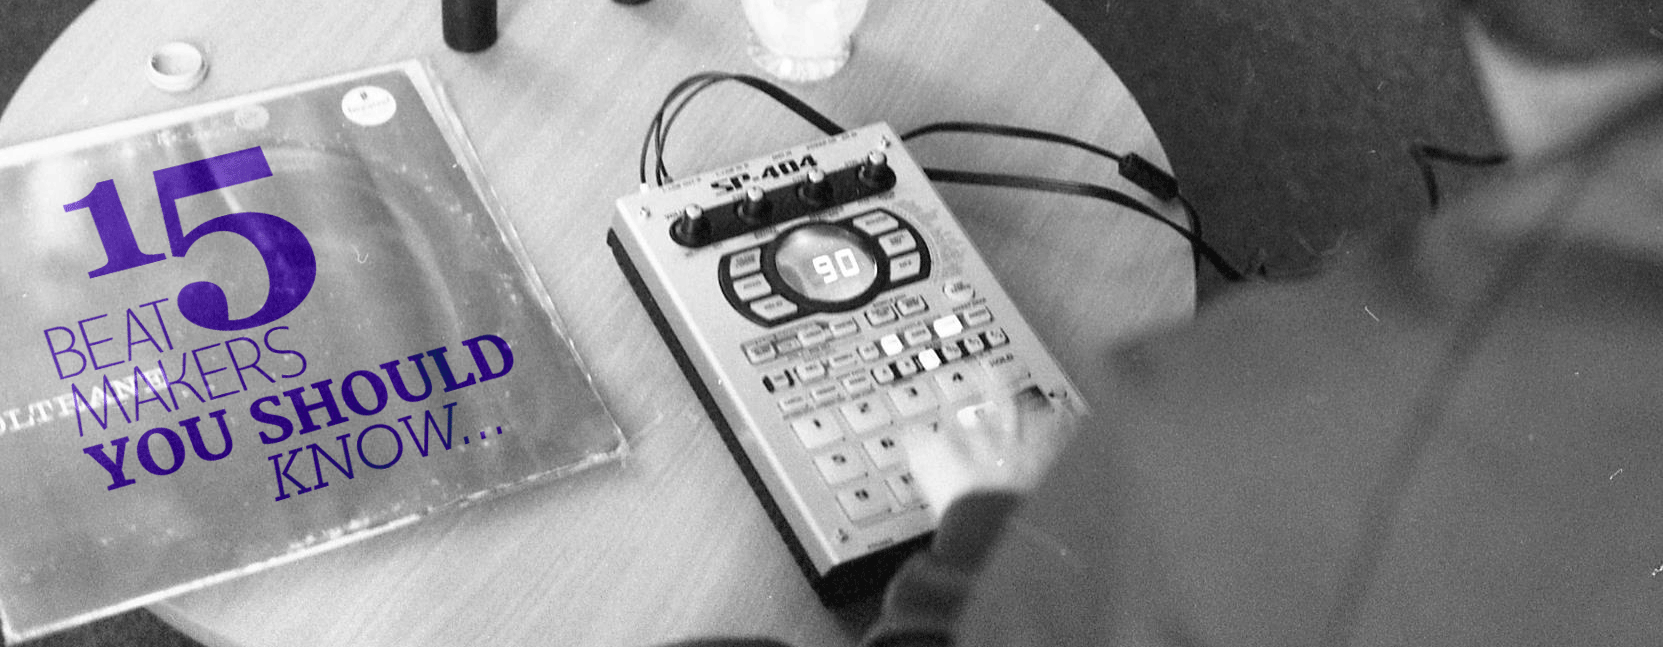 Top 15: Dope Beatmakers You Should Know